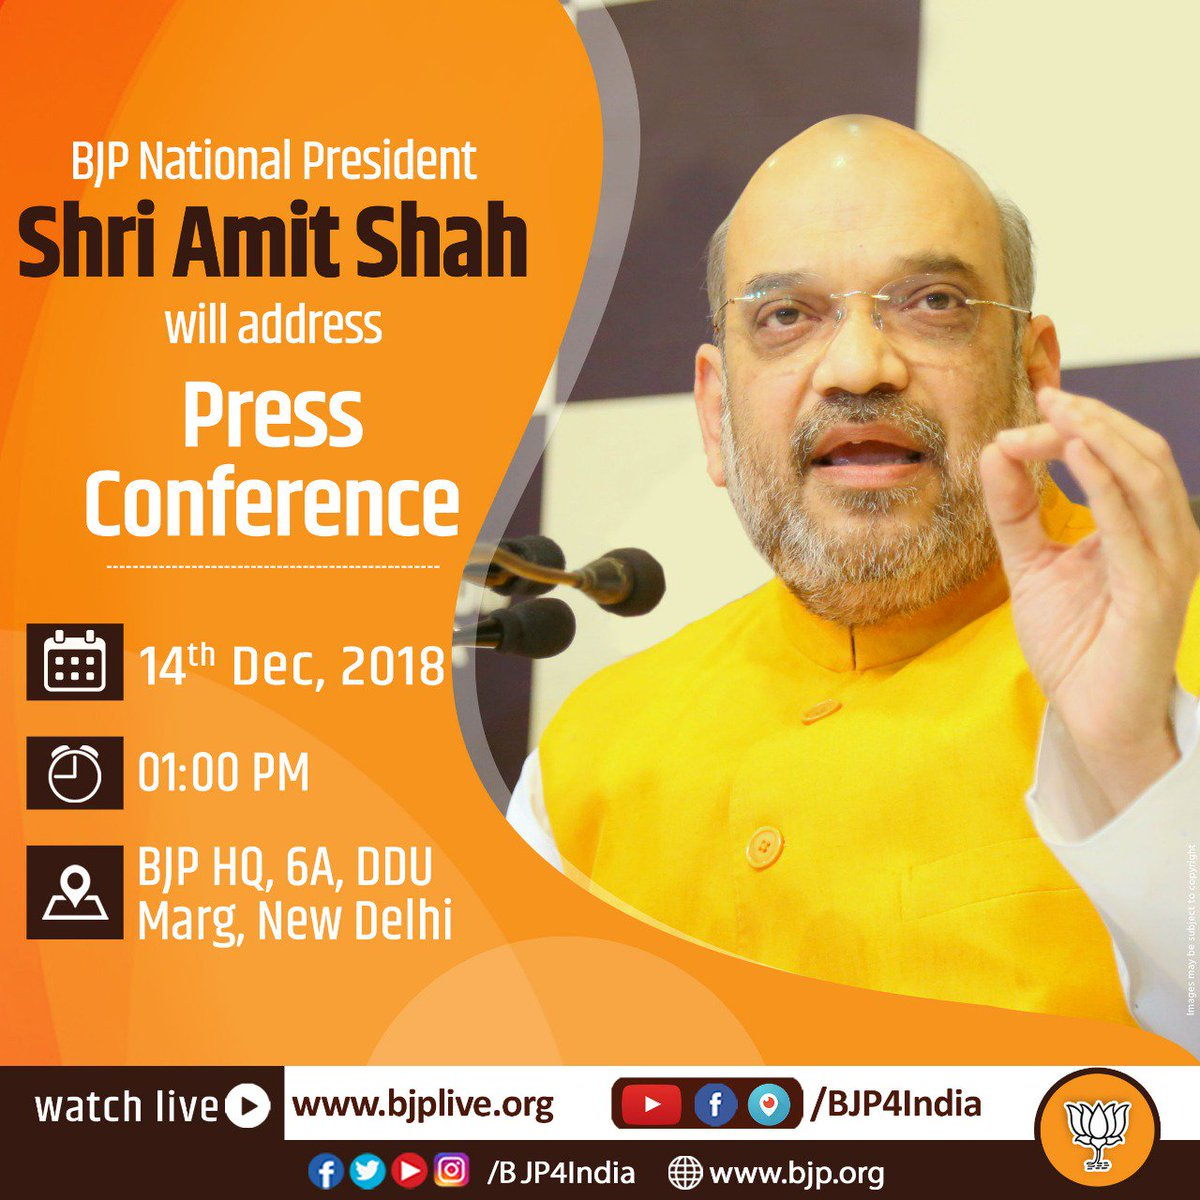 BJP National President Shri @AmitShah will shortly address a press conference at BJP HQ. Watch at https://t.co/vpP0MI6iTu and https://t.co/jtwD1yPhm4. #SCNailsRaGaLies